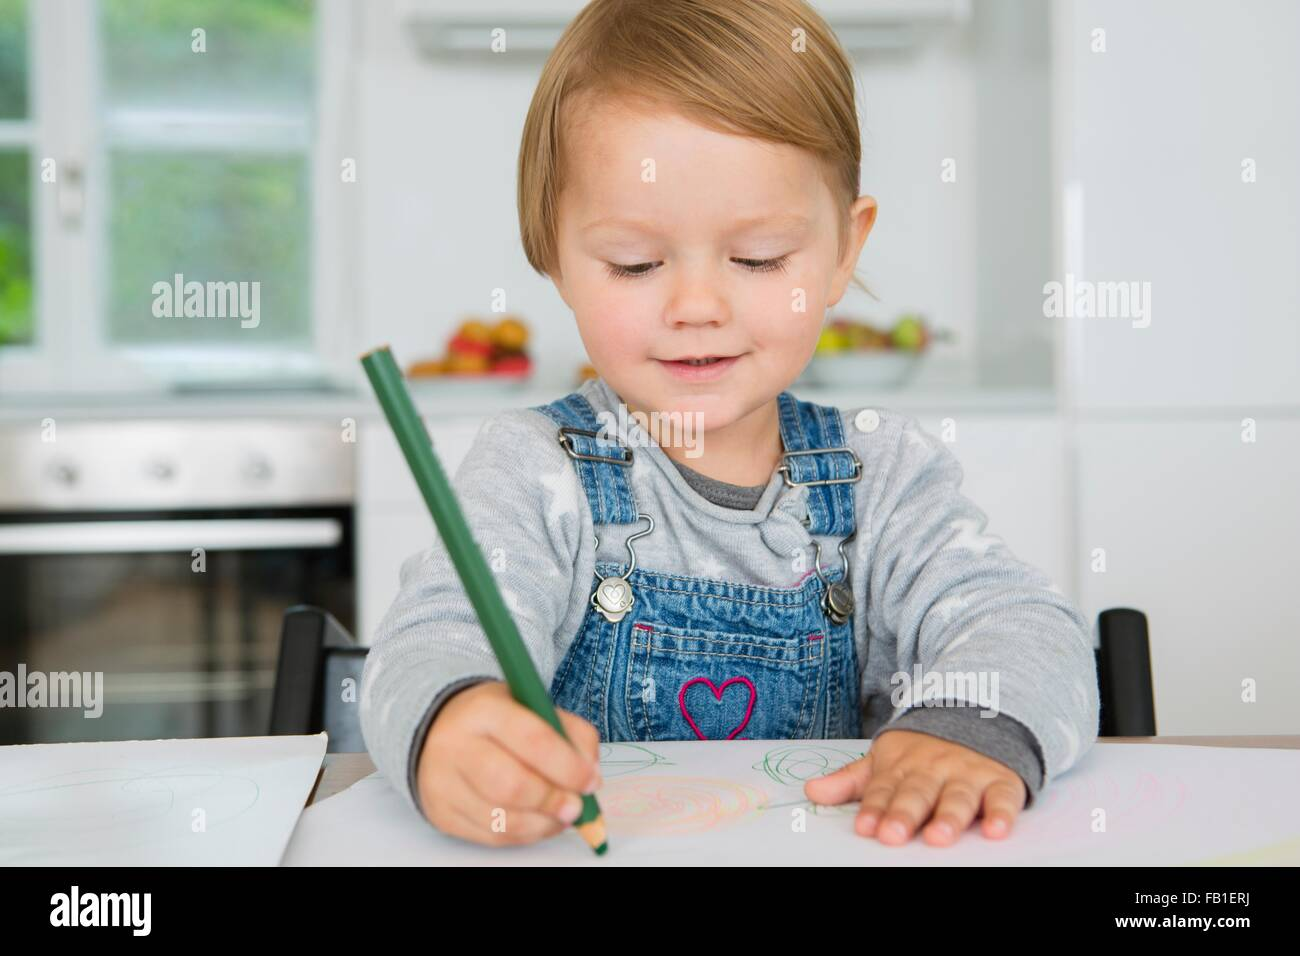 Female Toddler Drawing Kitchen Table Stock Photos & Female Toddler ...